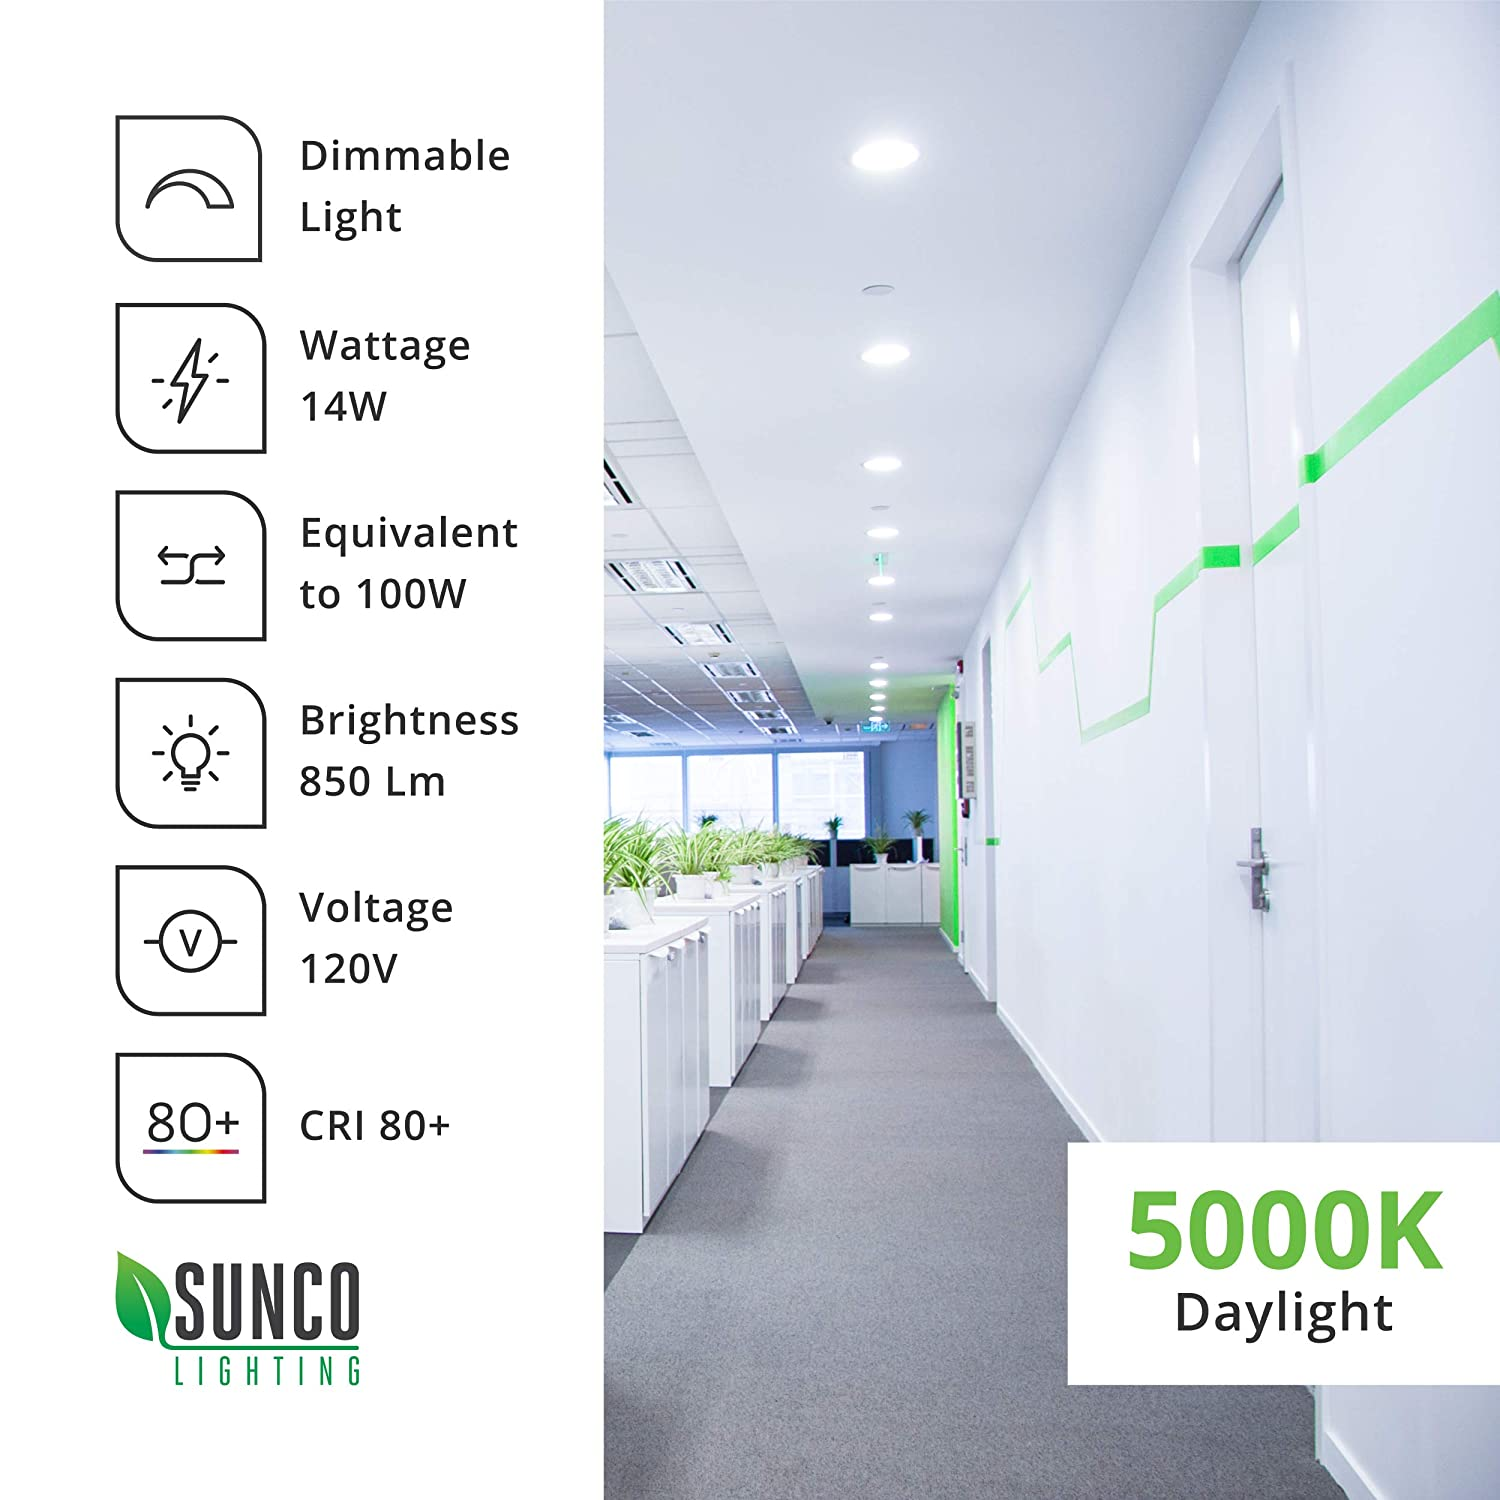 ETL /& Energy Star 650 LM Dimmable 2700K Soft White Recessed Jbox Fixture Simple Retrofit Installation Sunco Lighting 12 Pack 4 Inch Slim LED Downlight with Junction Box,10W=60W